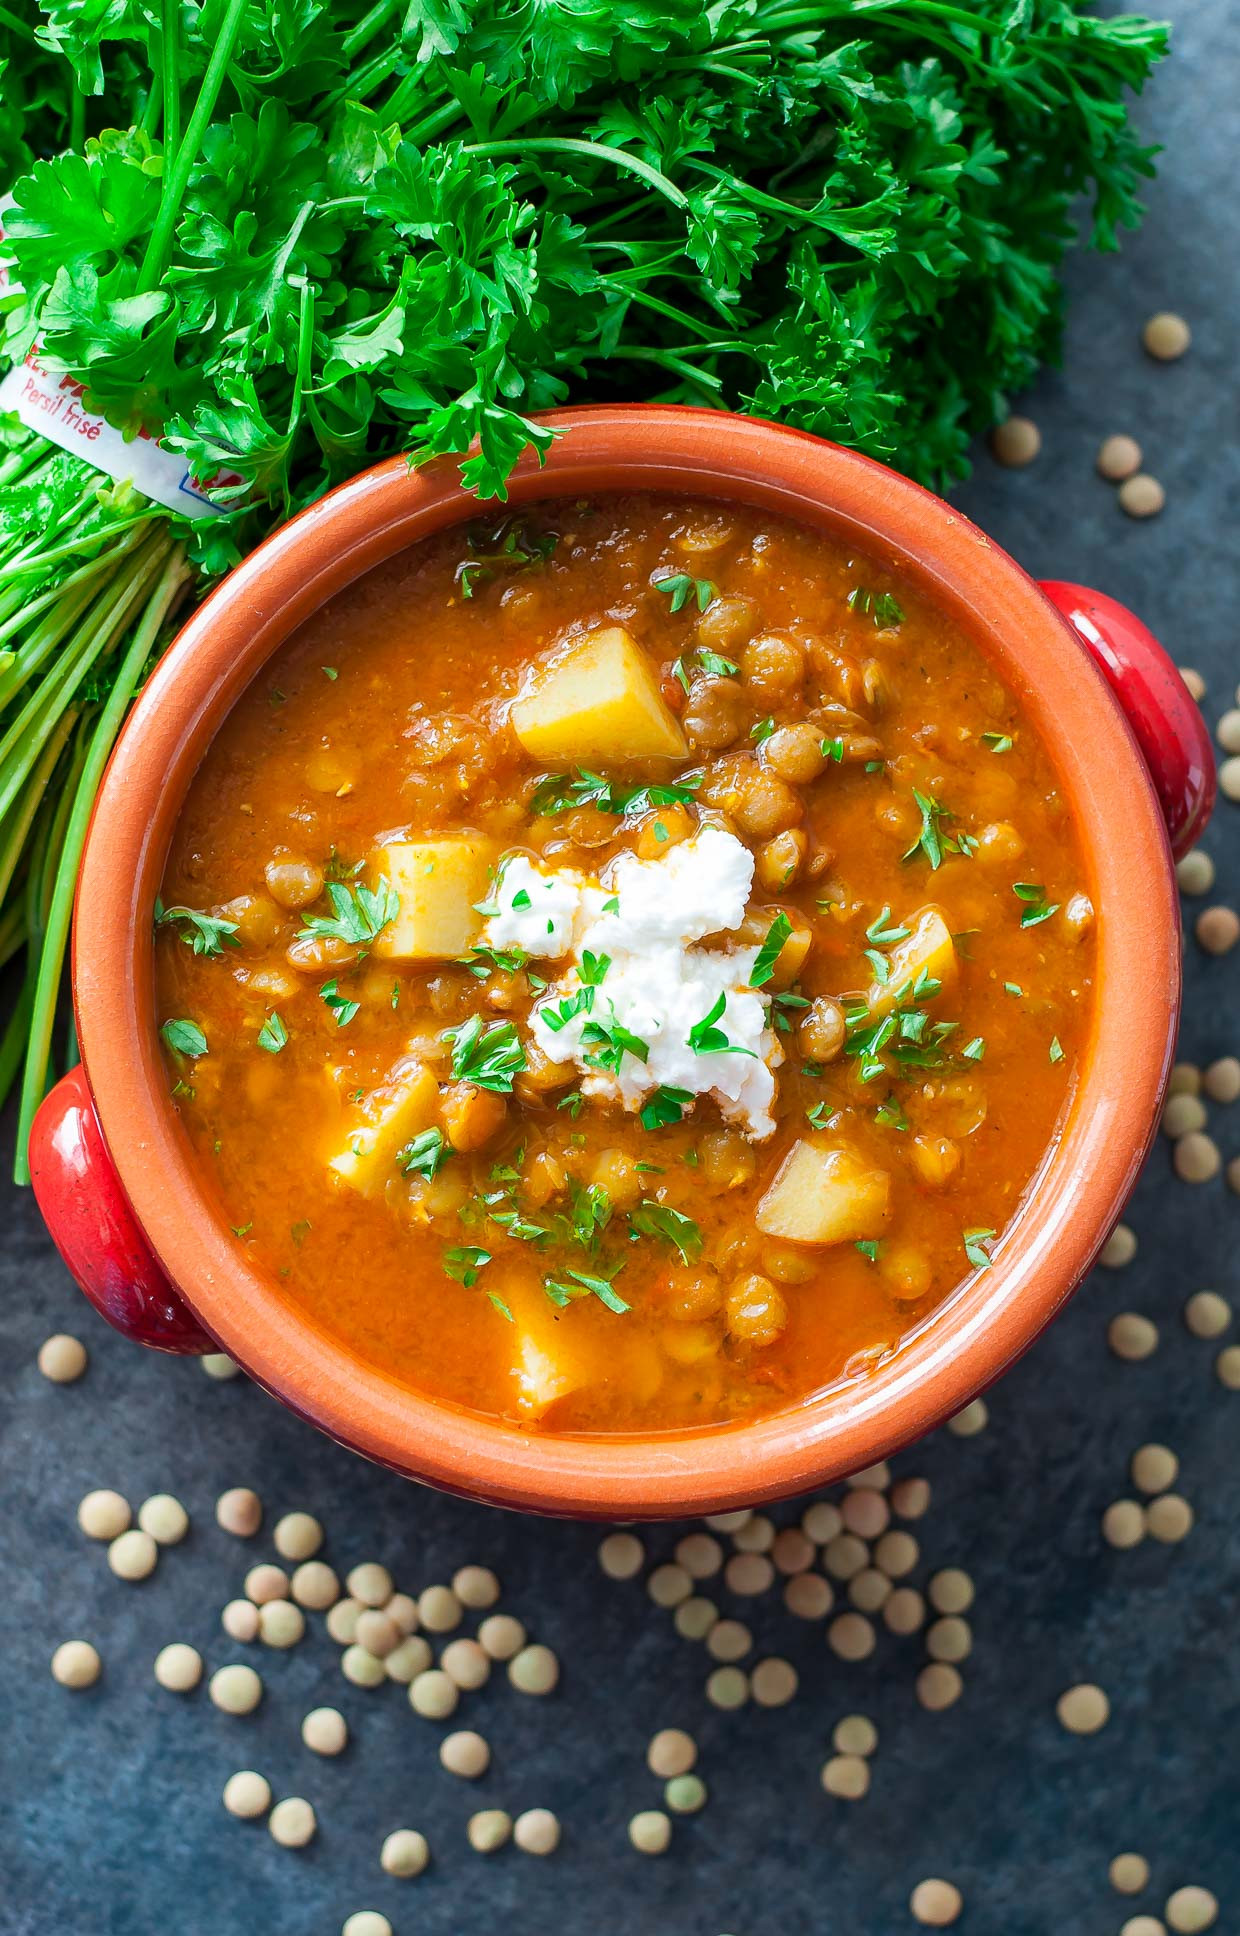 Healthy Vegetarian Soup Recipes  Ve arian Healthy Lentil Soup Recipe Peas and Crayons